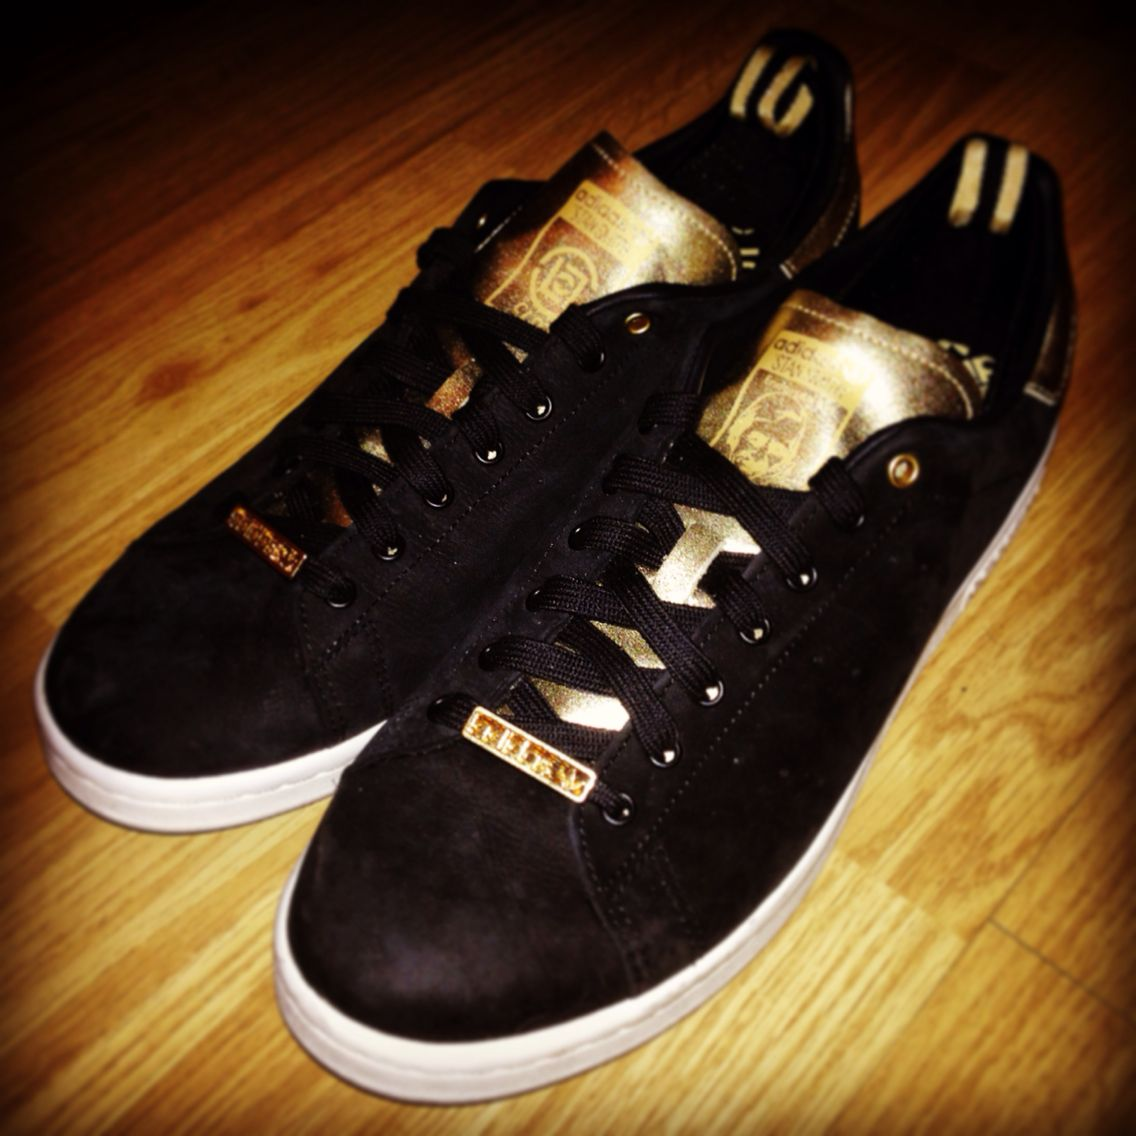 adidas stan smith x coagulo con adidas gold lace serrature che vorrei